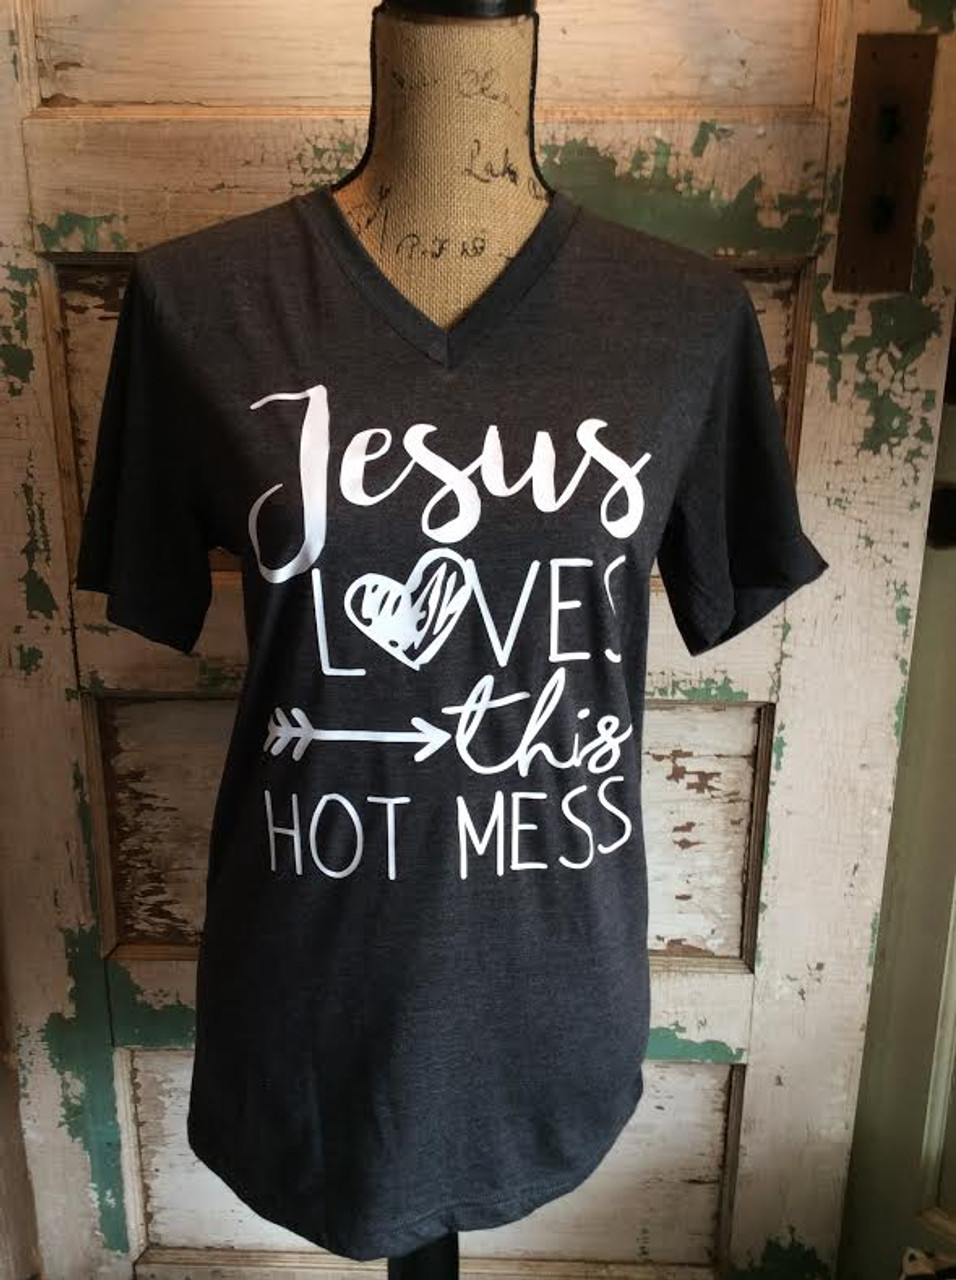 95a3ab0a4f759 Jesus Loves This Hot Mess - Vneck Unisex Shirt - Hot Mess Express